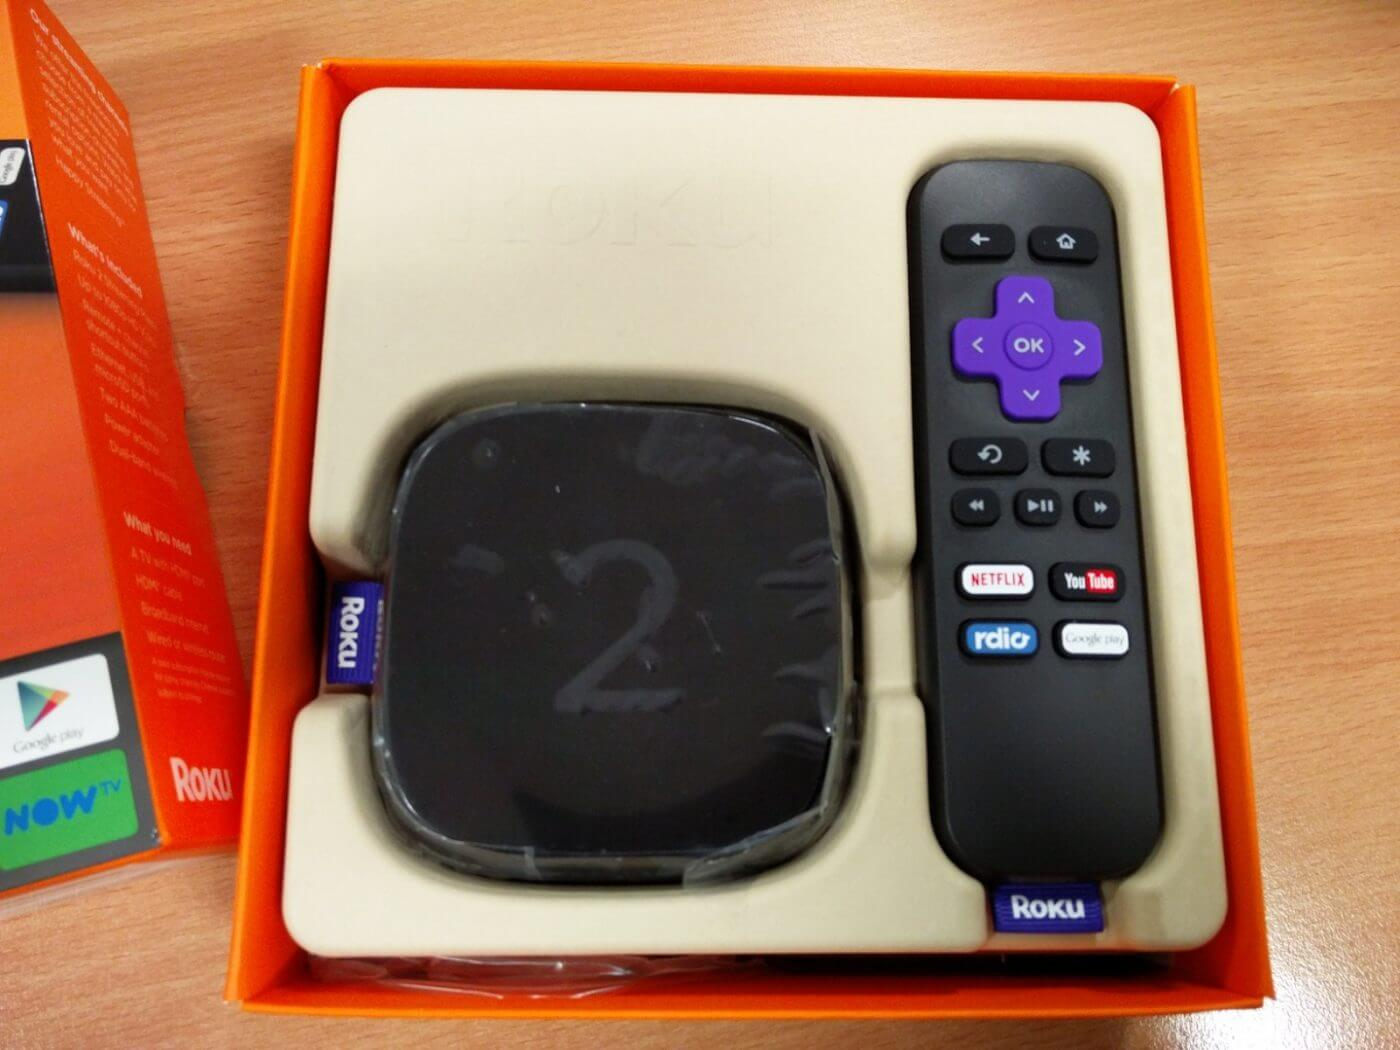 Roku 2 inside box